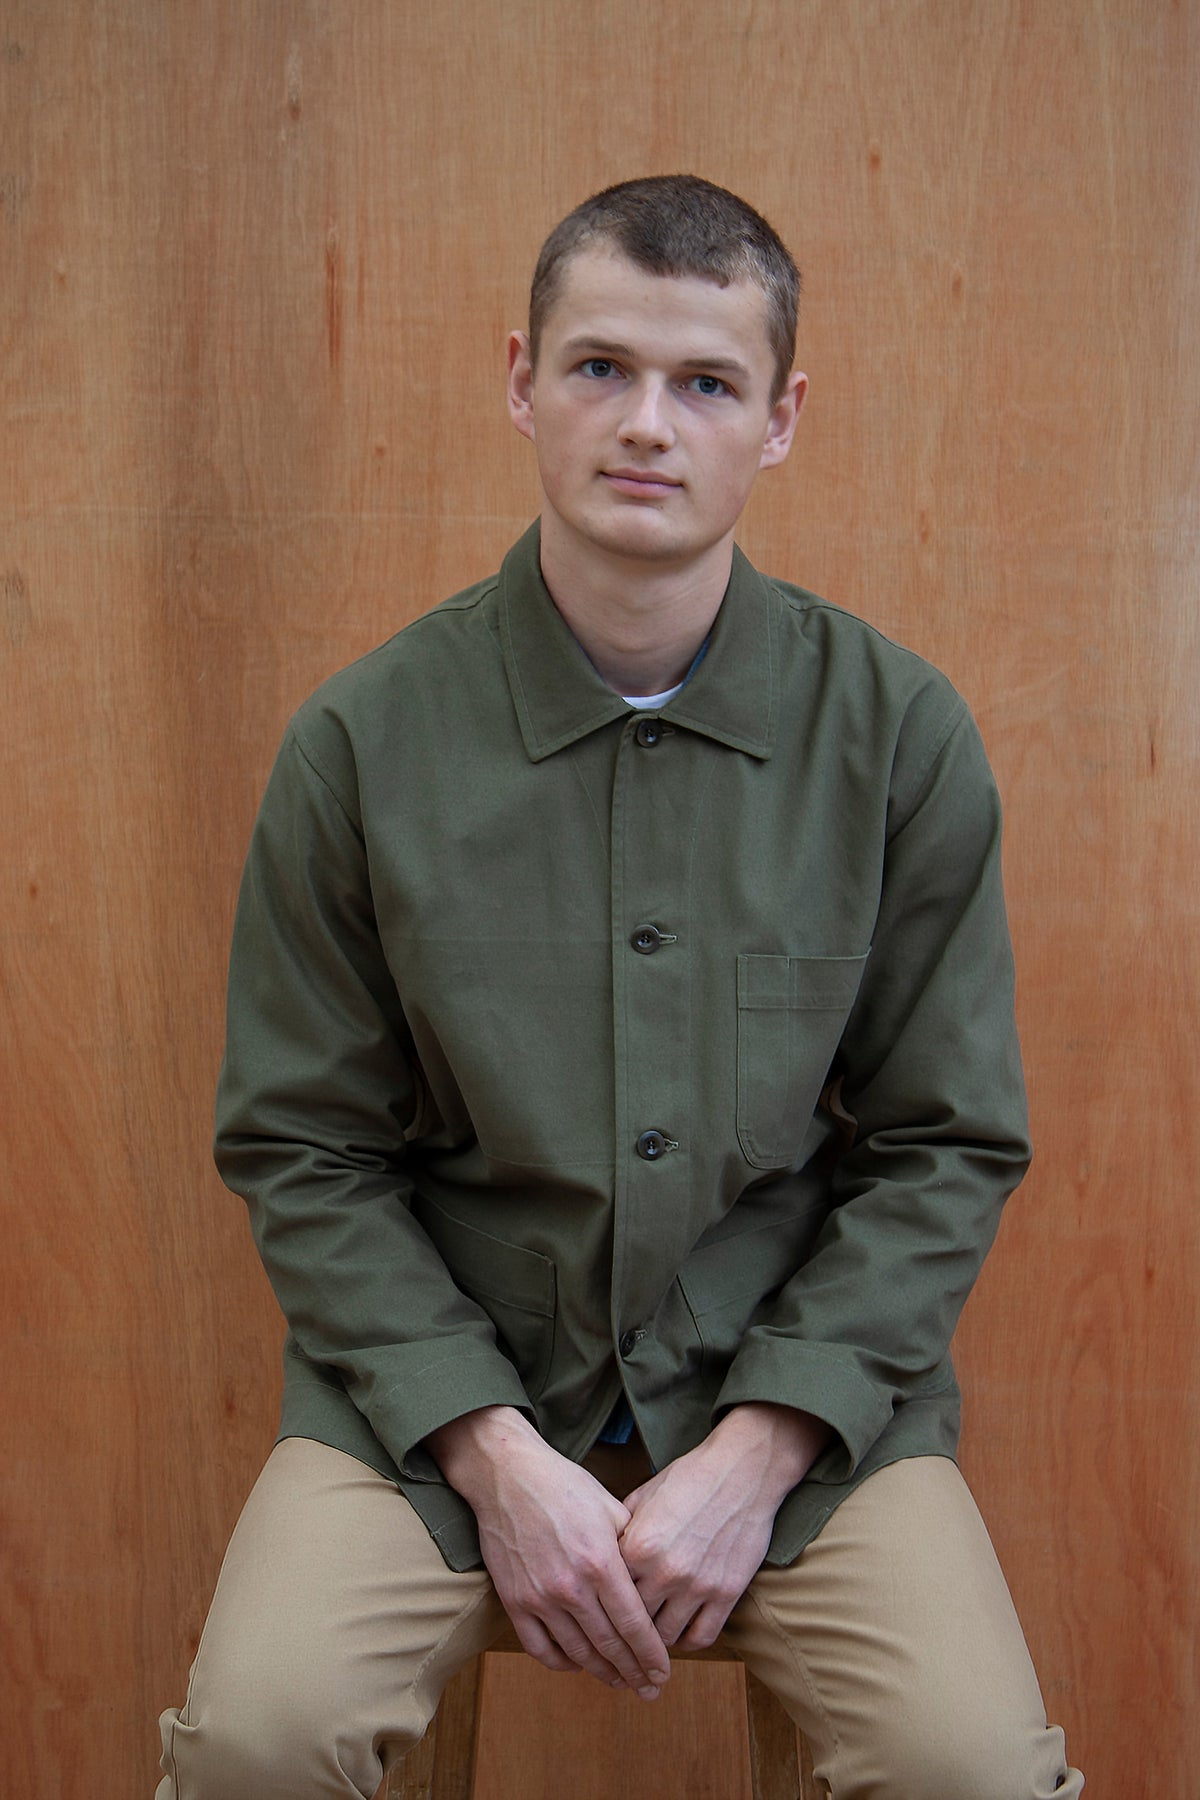 a young man sitting against a wooden wall wearing a traditional chore jacket made in a sage green  brushed cotton canvas